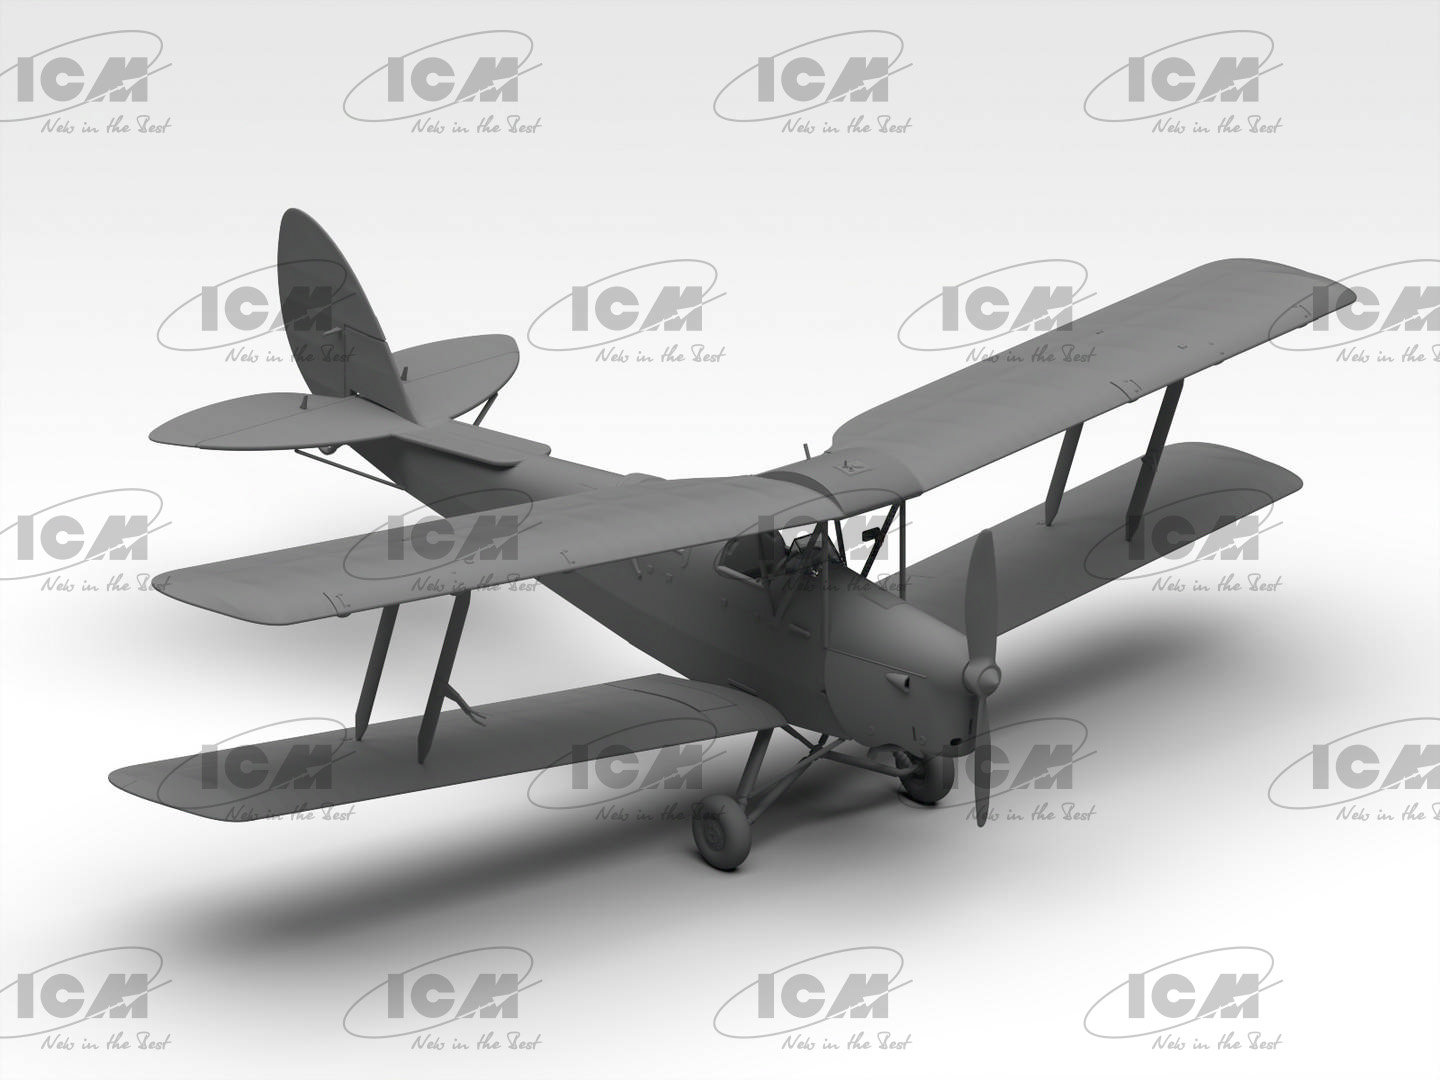 1606202836_de-havilland-dh82a-render-2-ryerryiryos